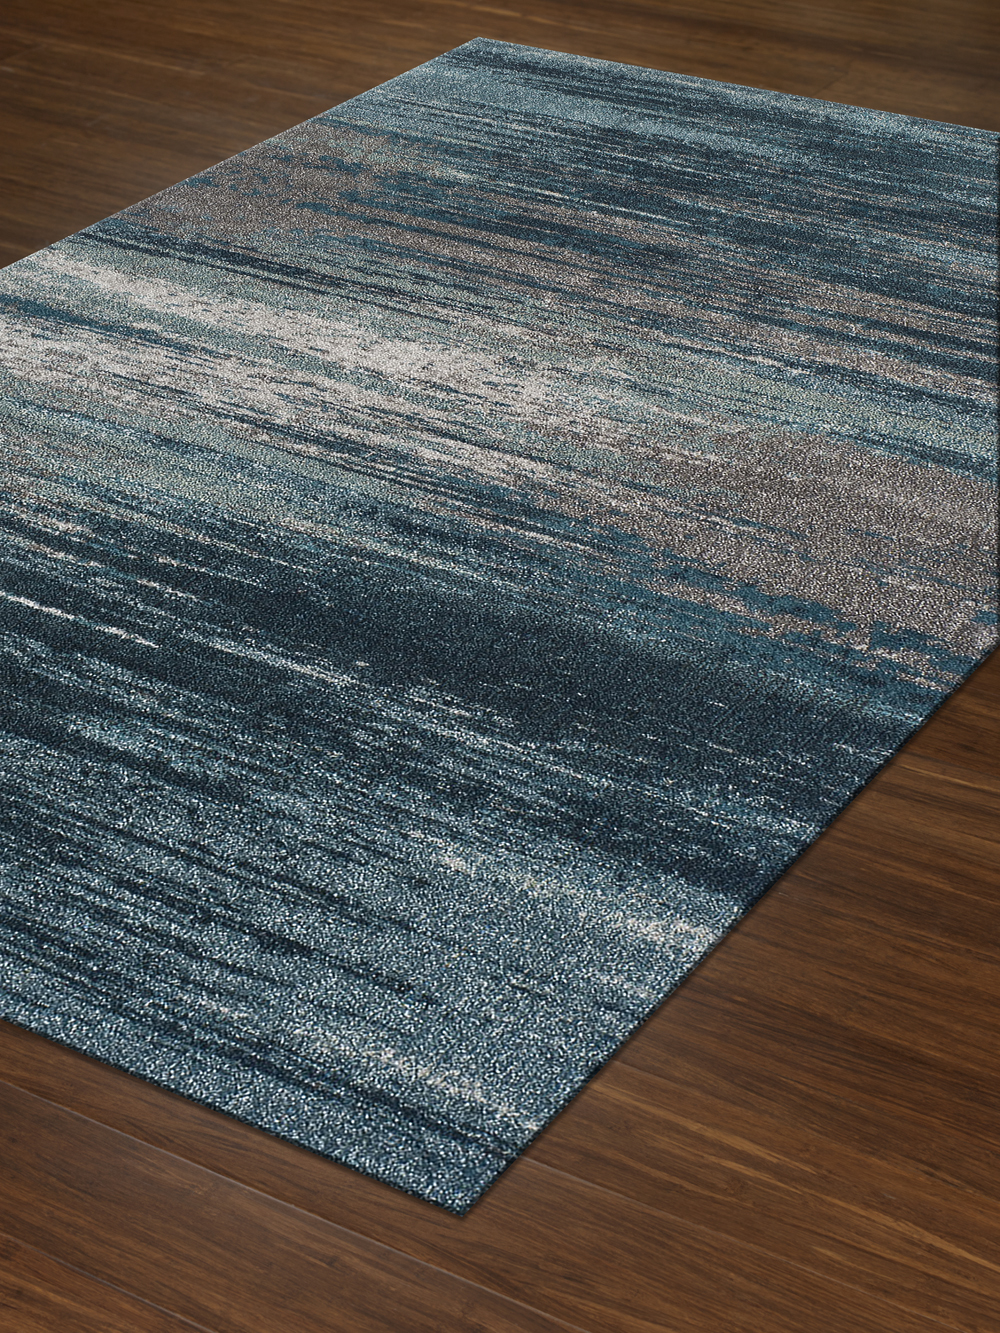 Modern Teal Premium Polypropylene Rug Soft And